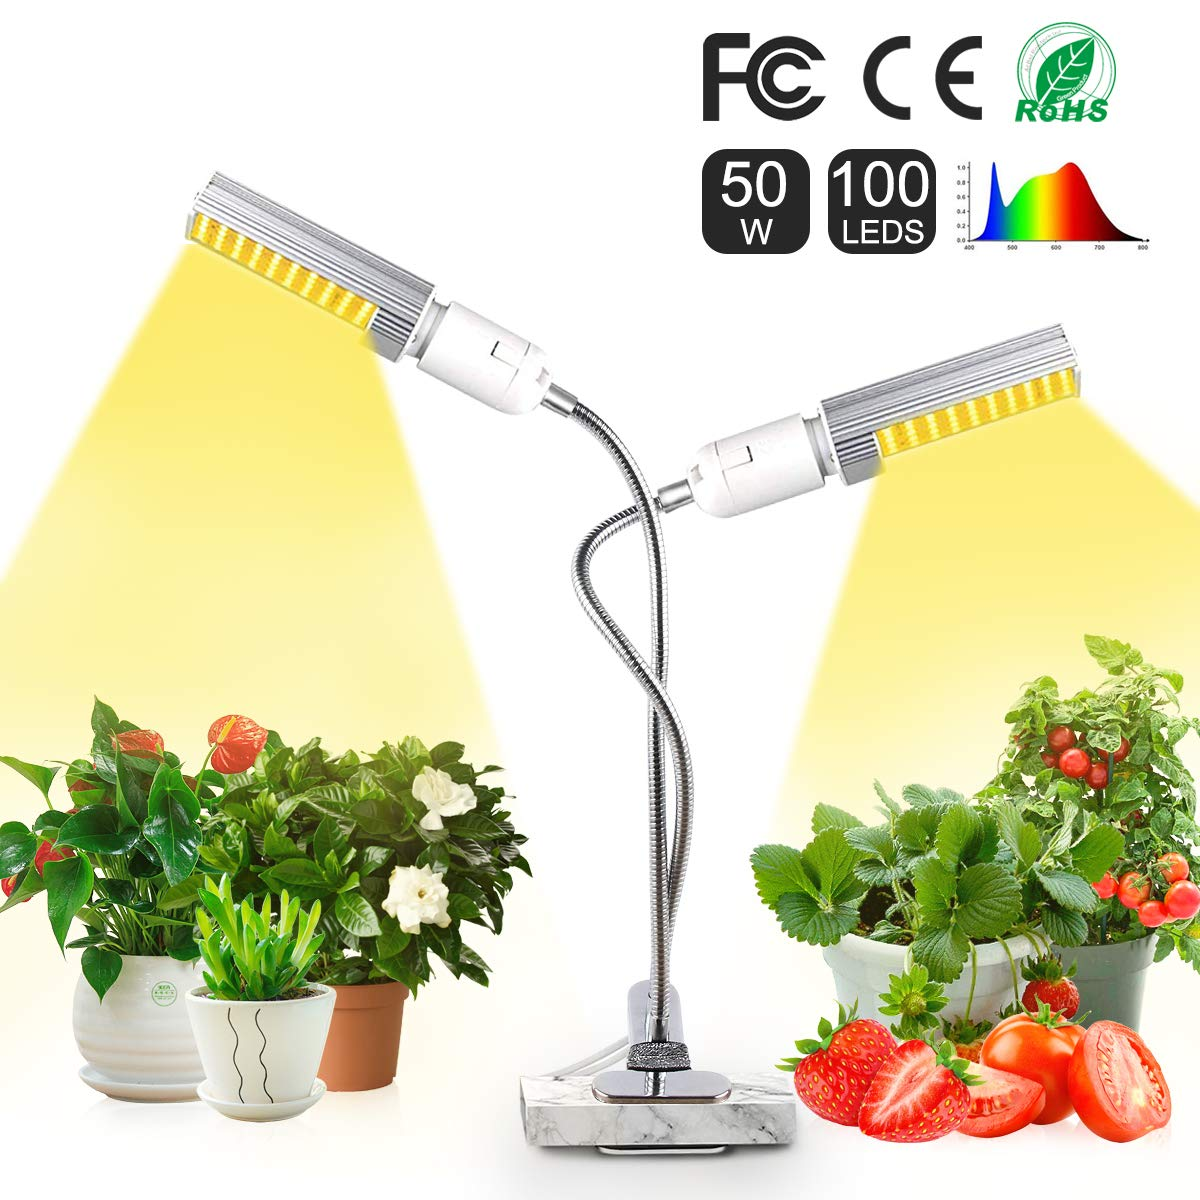 Elejolie 50W LED Grow Light for Indoor Plants Full Spectrum Grow Lamp for Greenhouse Plant Light for Vegetables and Flowers